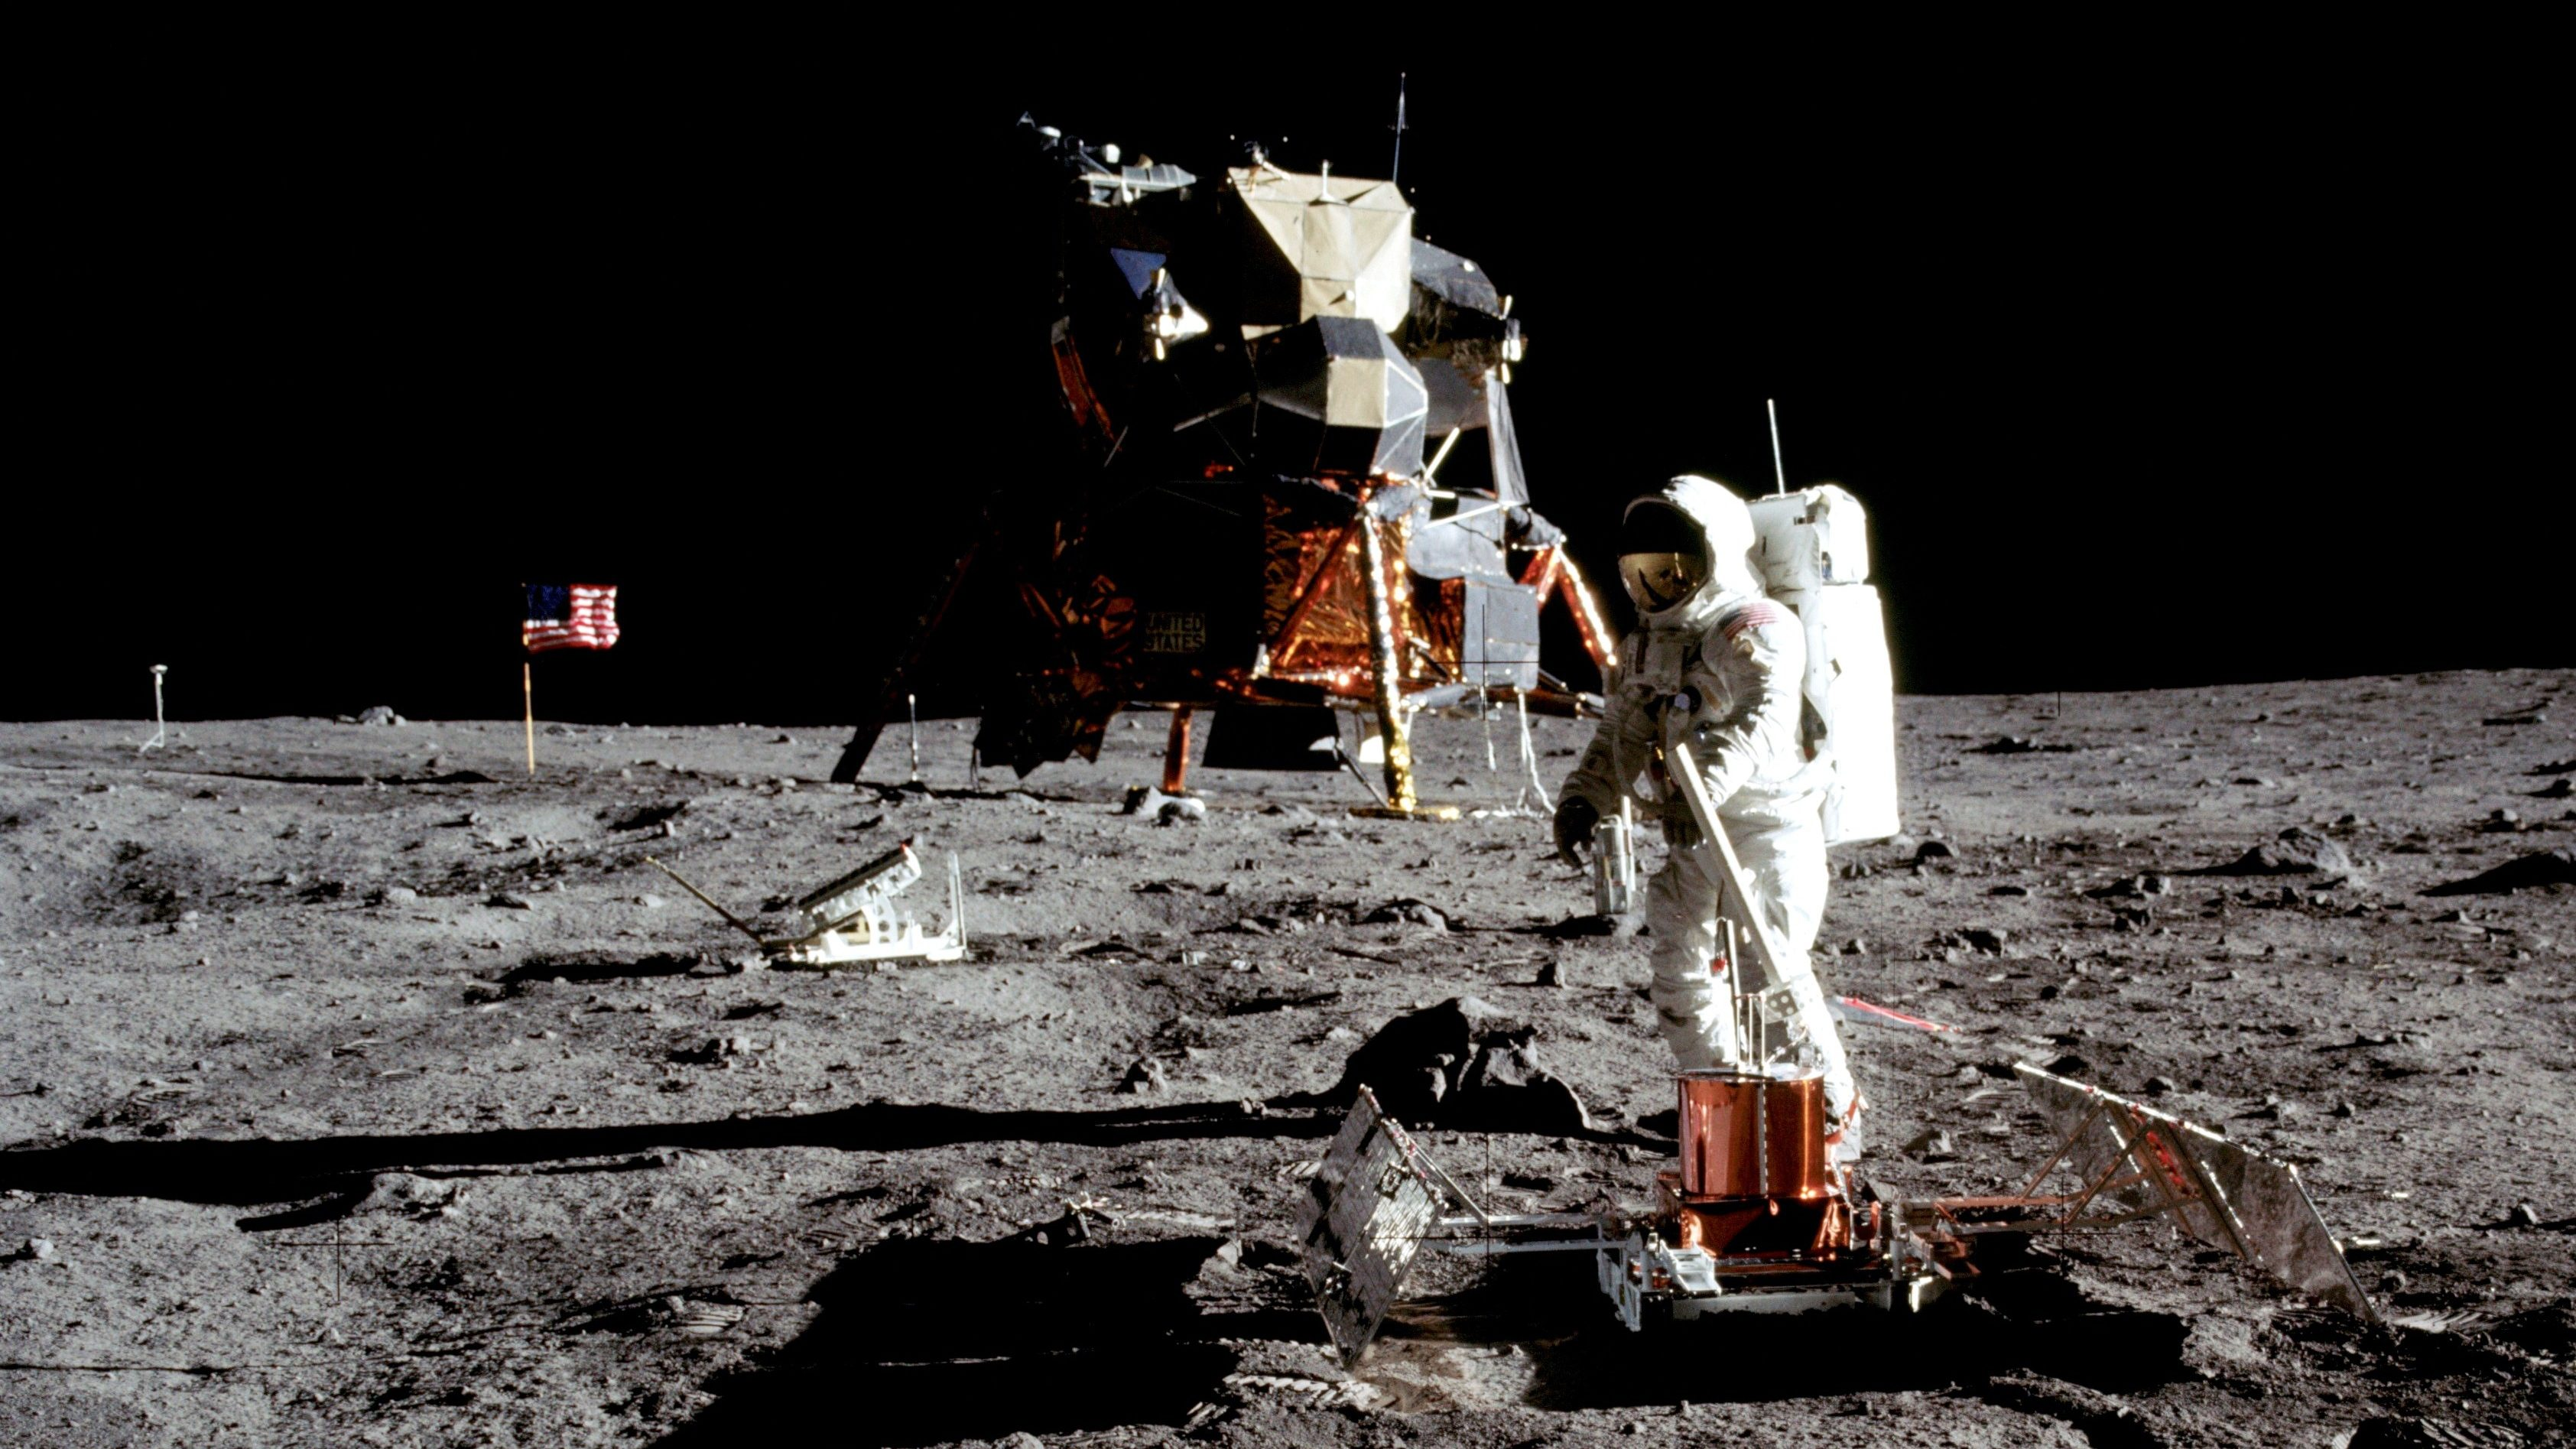 10 amazing facts about the apollo 11 moon landing - HD1920×1080